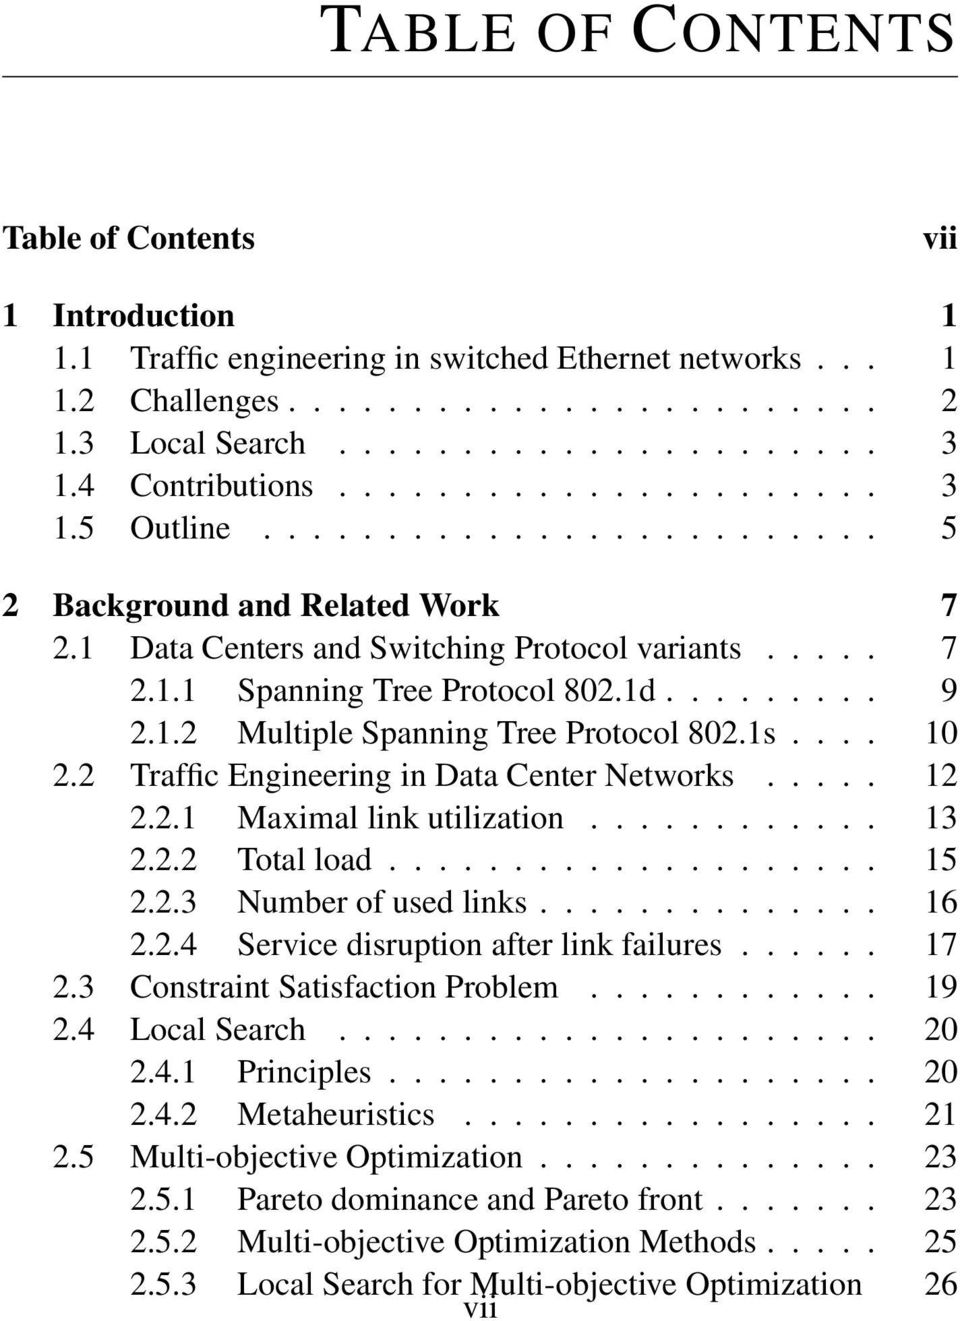 1d......... 9 2.1.2 Multiple Spanning Tree Protocol 802.1s.... 10 2.2 Traffic Engineering in Data Center Networks..... 12 2.2.1 Maximal link utilization............ 13 2.2.2 Total load.................... 15 2.